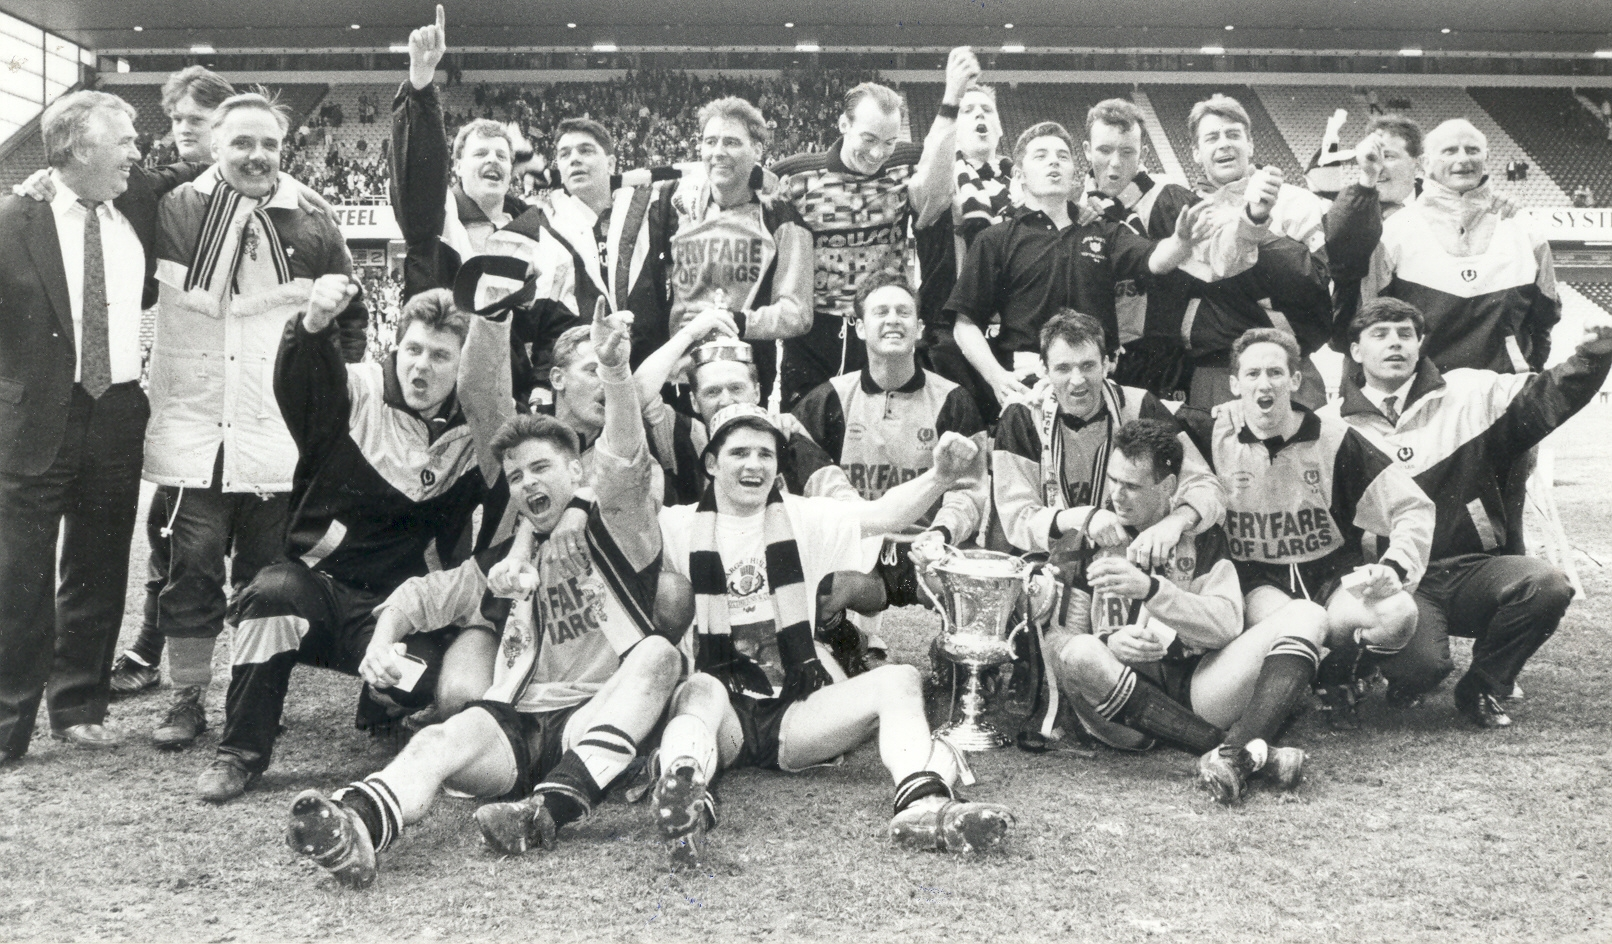 Thistle won the cup against Glens 25 years ago this week!